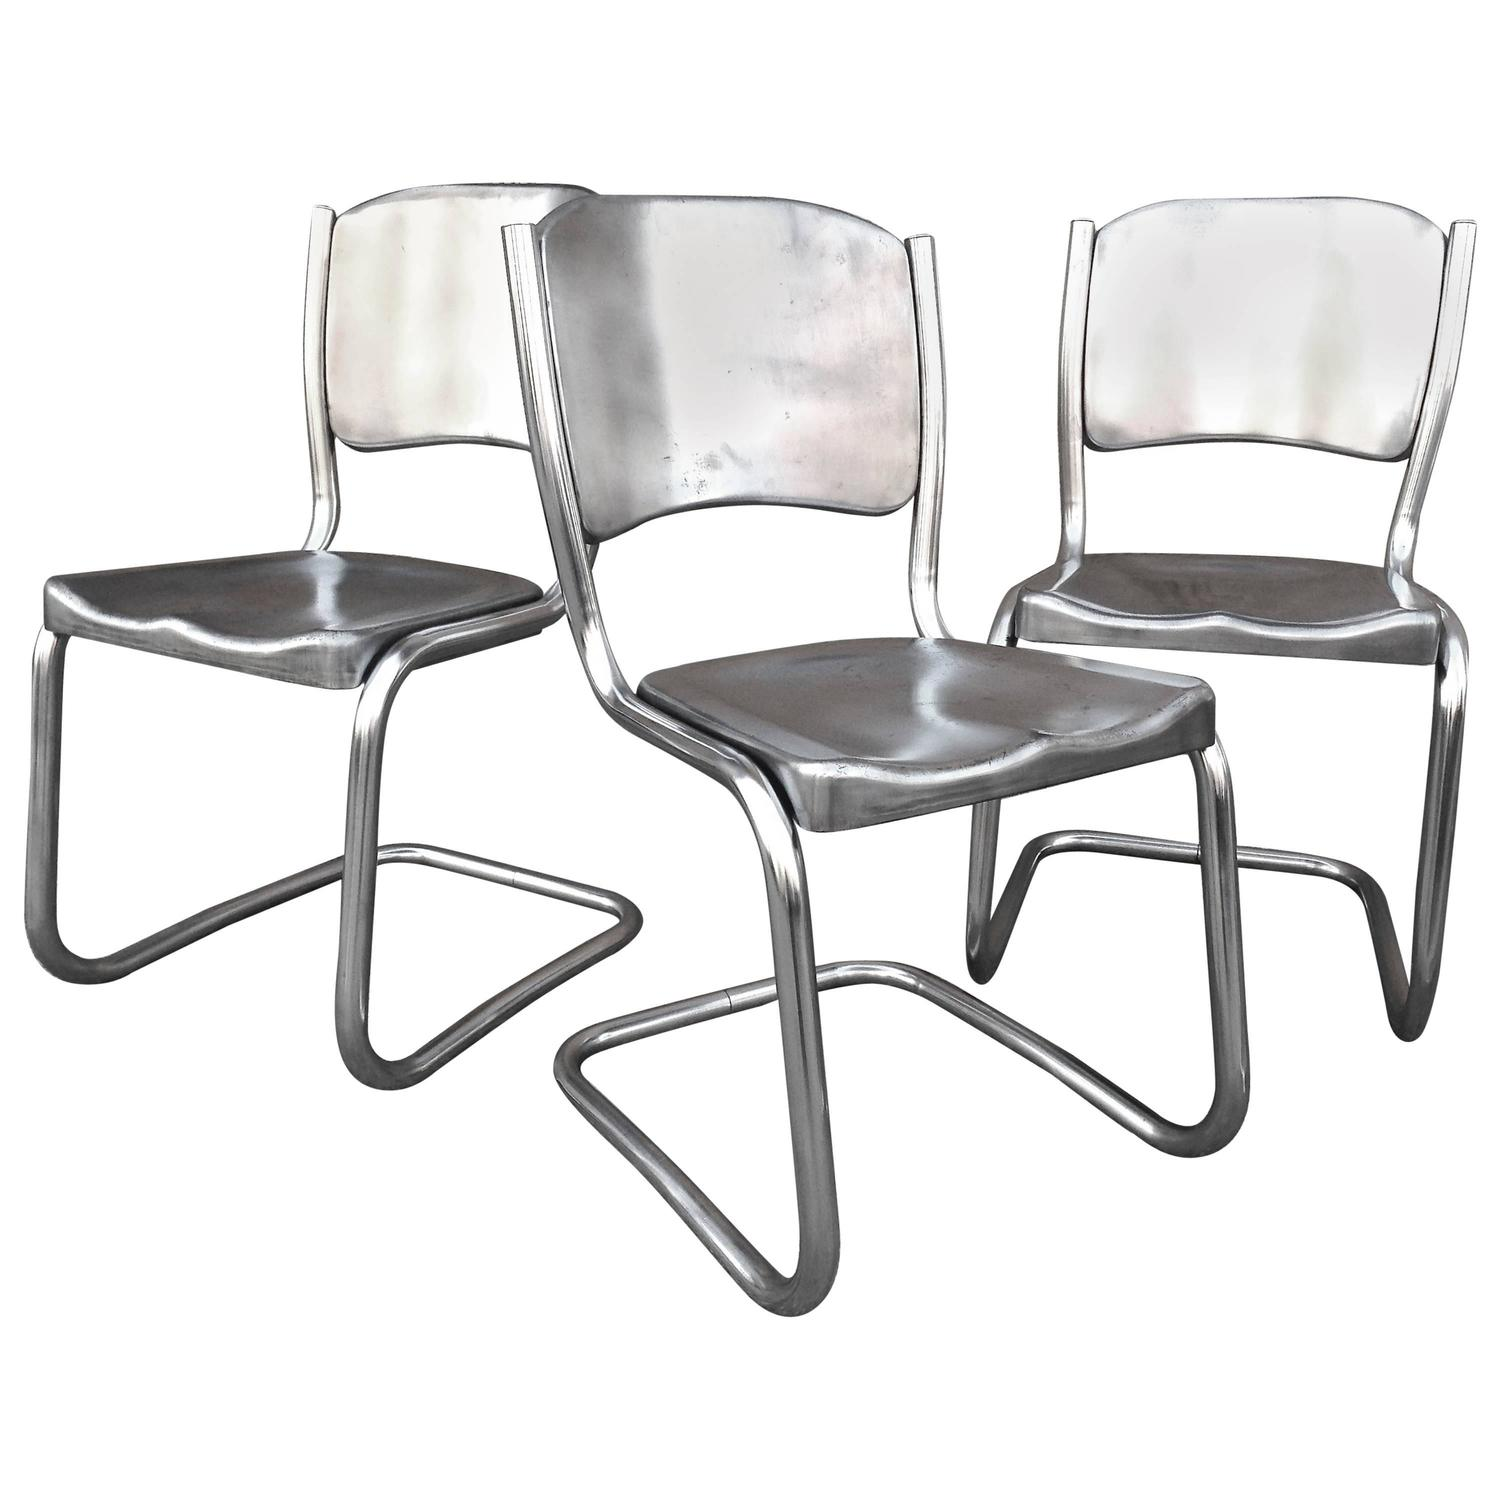 Two Sets of Four Tubular Brushed Steel Dining Chairs For Sale at